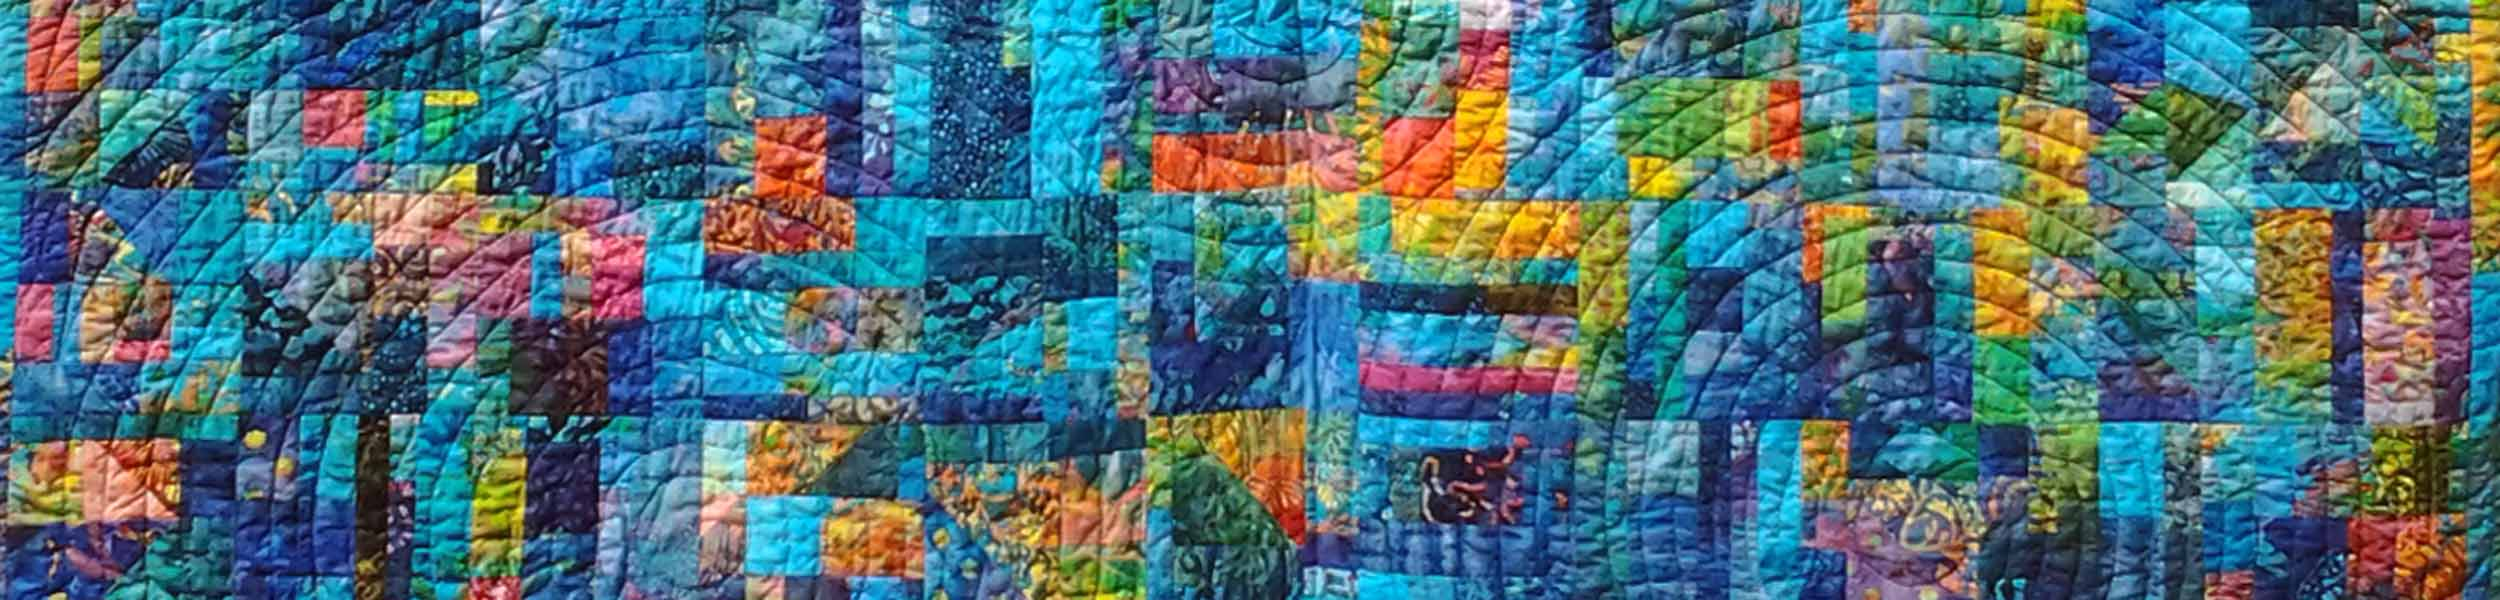 header image of Stash Quilt by Inspired Quilting by Lea Louise